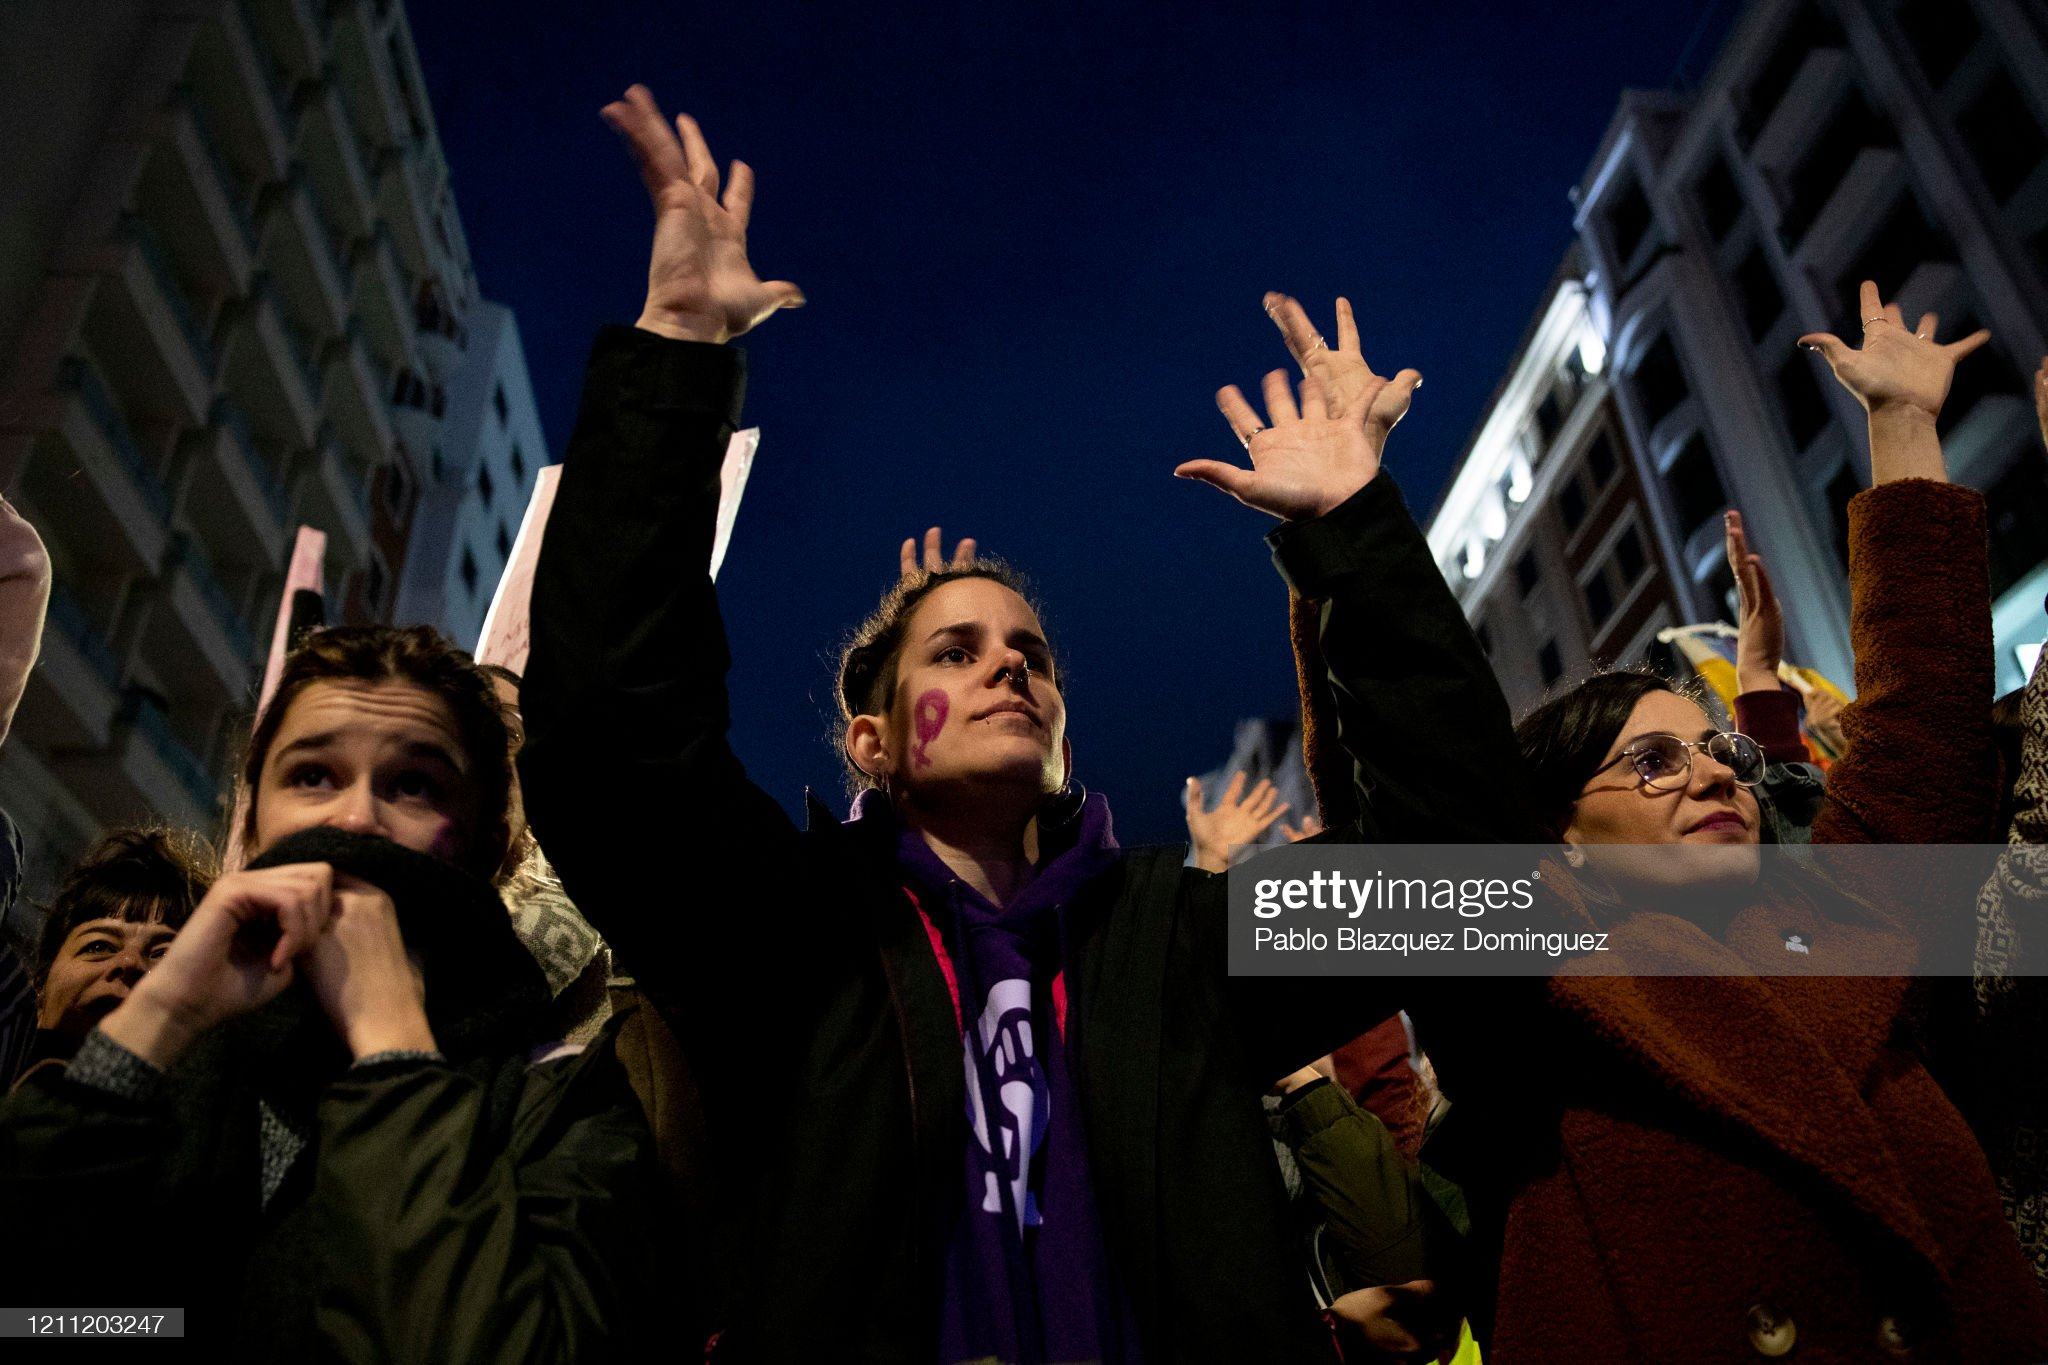 protesters-attend-a-demonstration-during-international-womens-day-on-picture-id1211203247